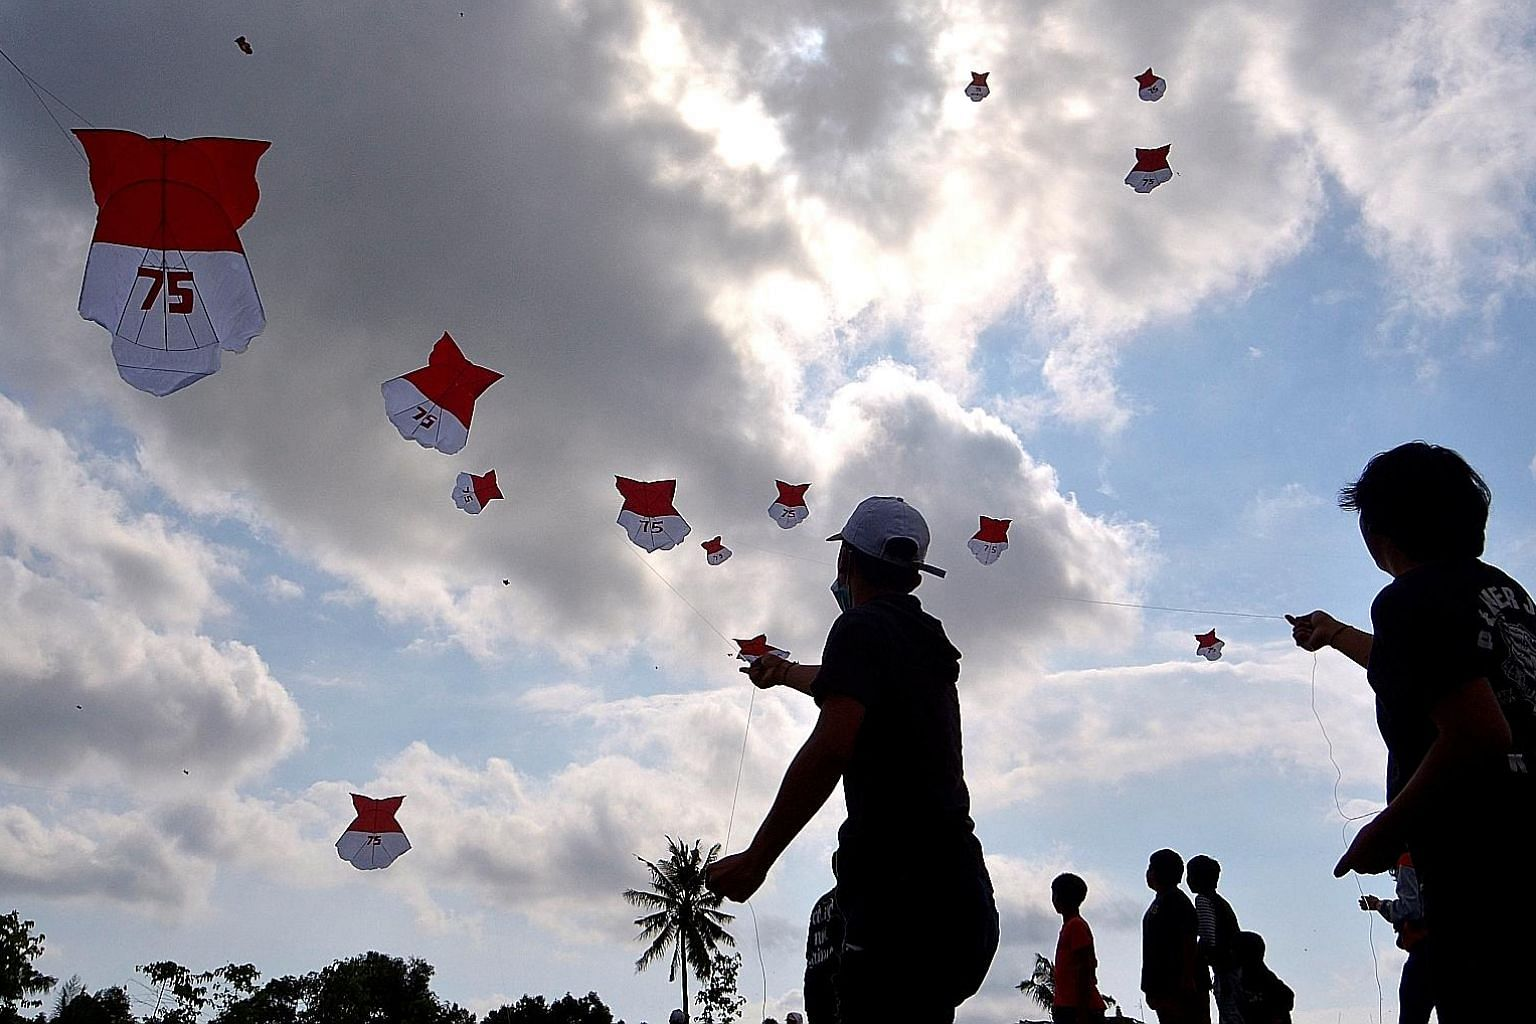 Kites being flown ahead of Indonesia's upcoming 75th Independence Day, in Bali on Aug 8. The public mood is not buoyant amid the pandemic and other issues, the writer says, but it is worth highlighting the pivotal changes made early in the post-Suhar